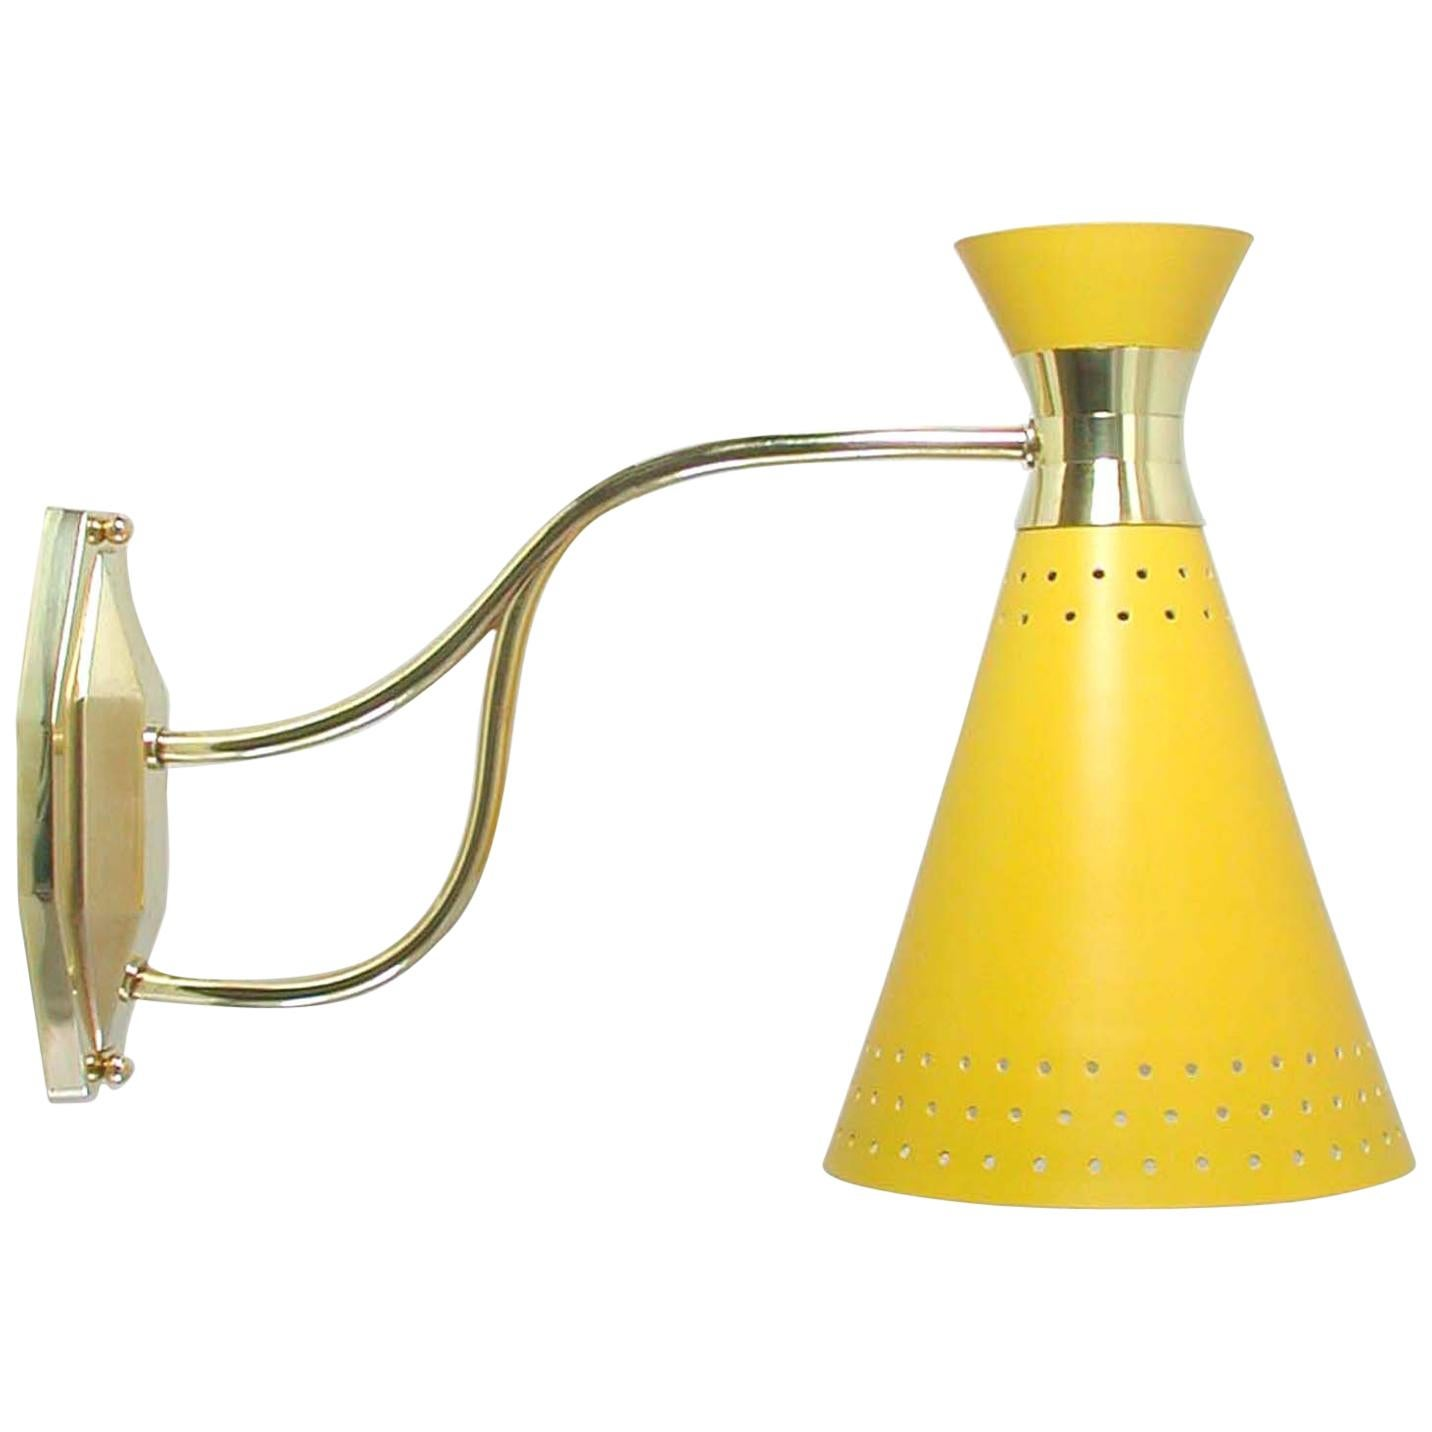 Midcentury French, 1950s Yellow Diabolo Wall Light Sconce, Pierre Guariche Era